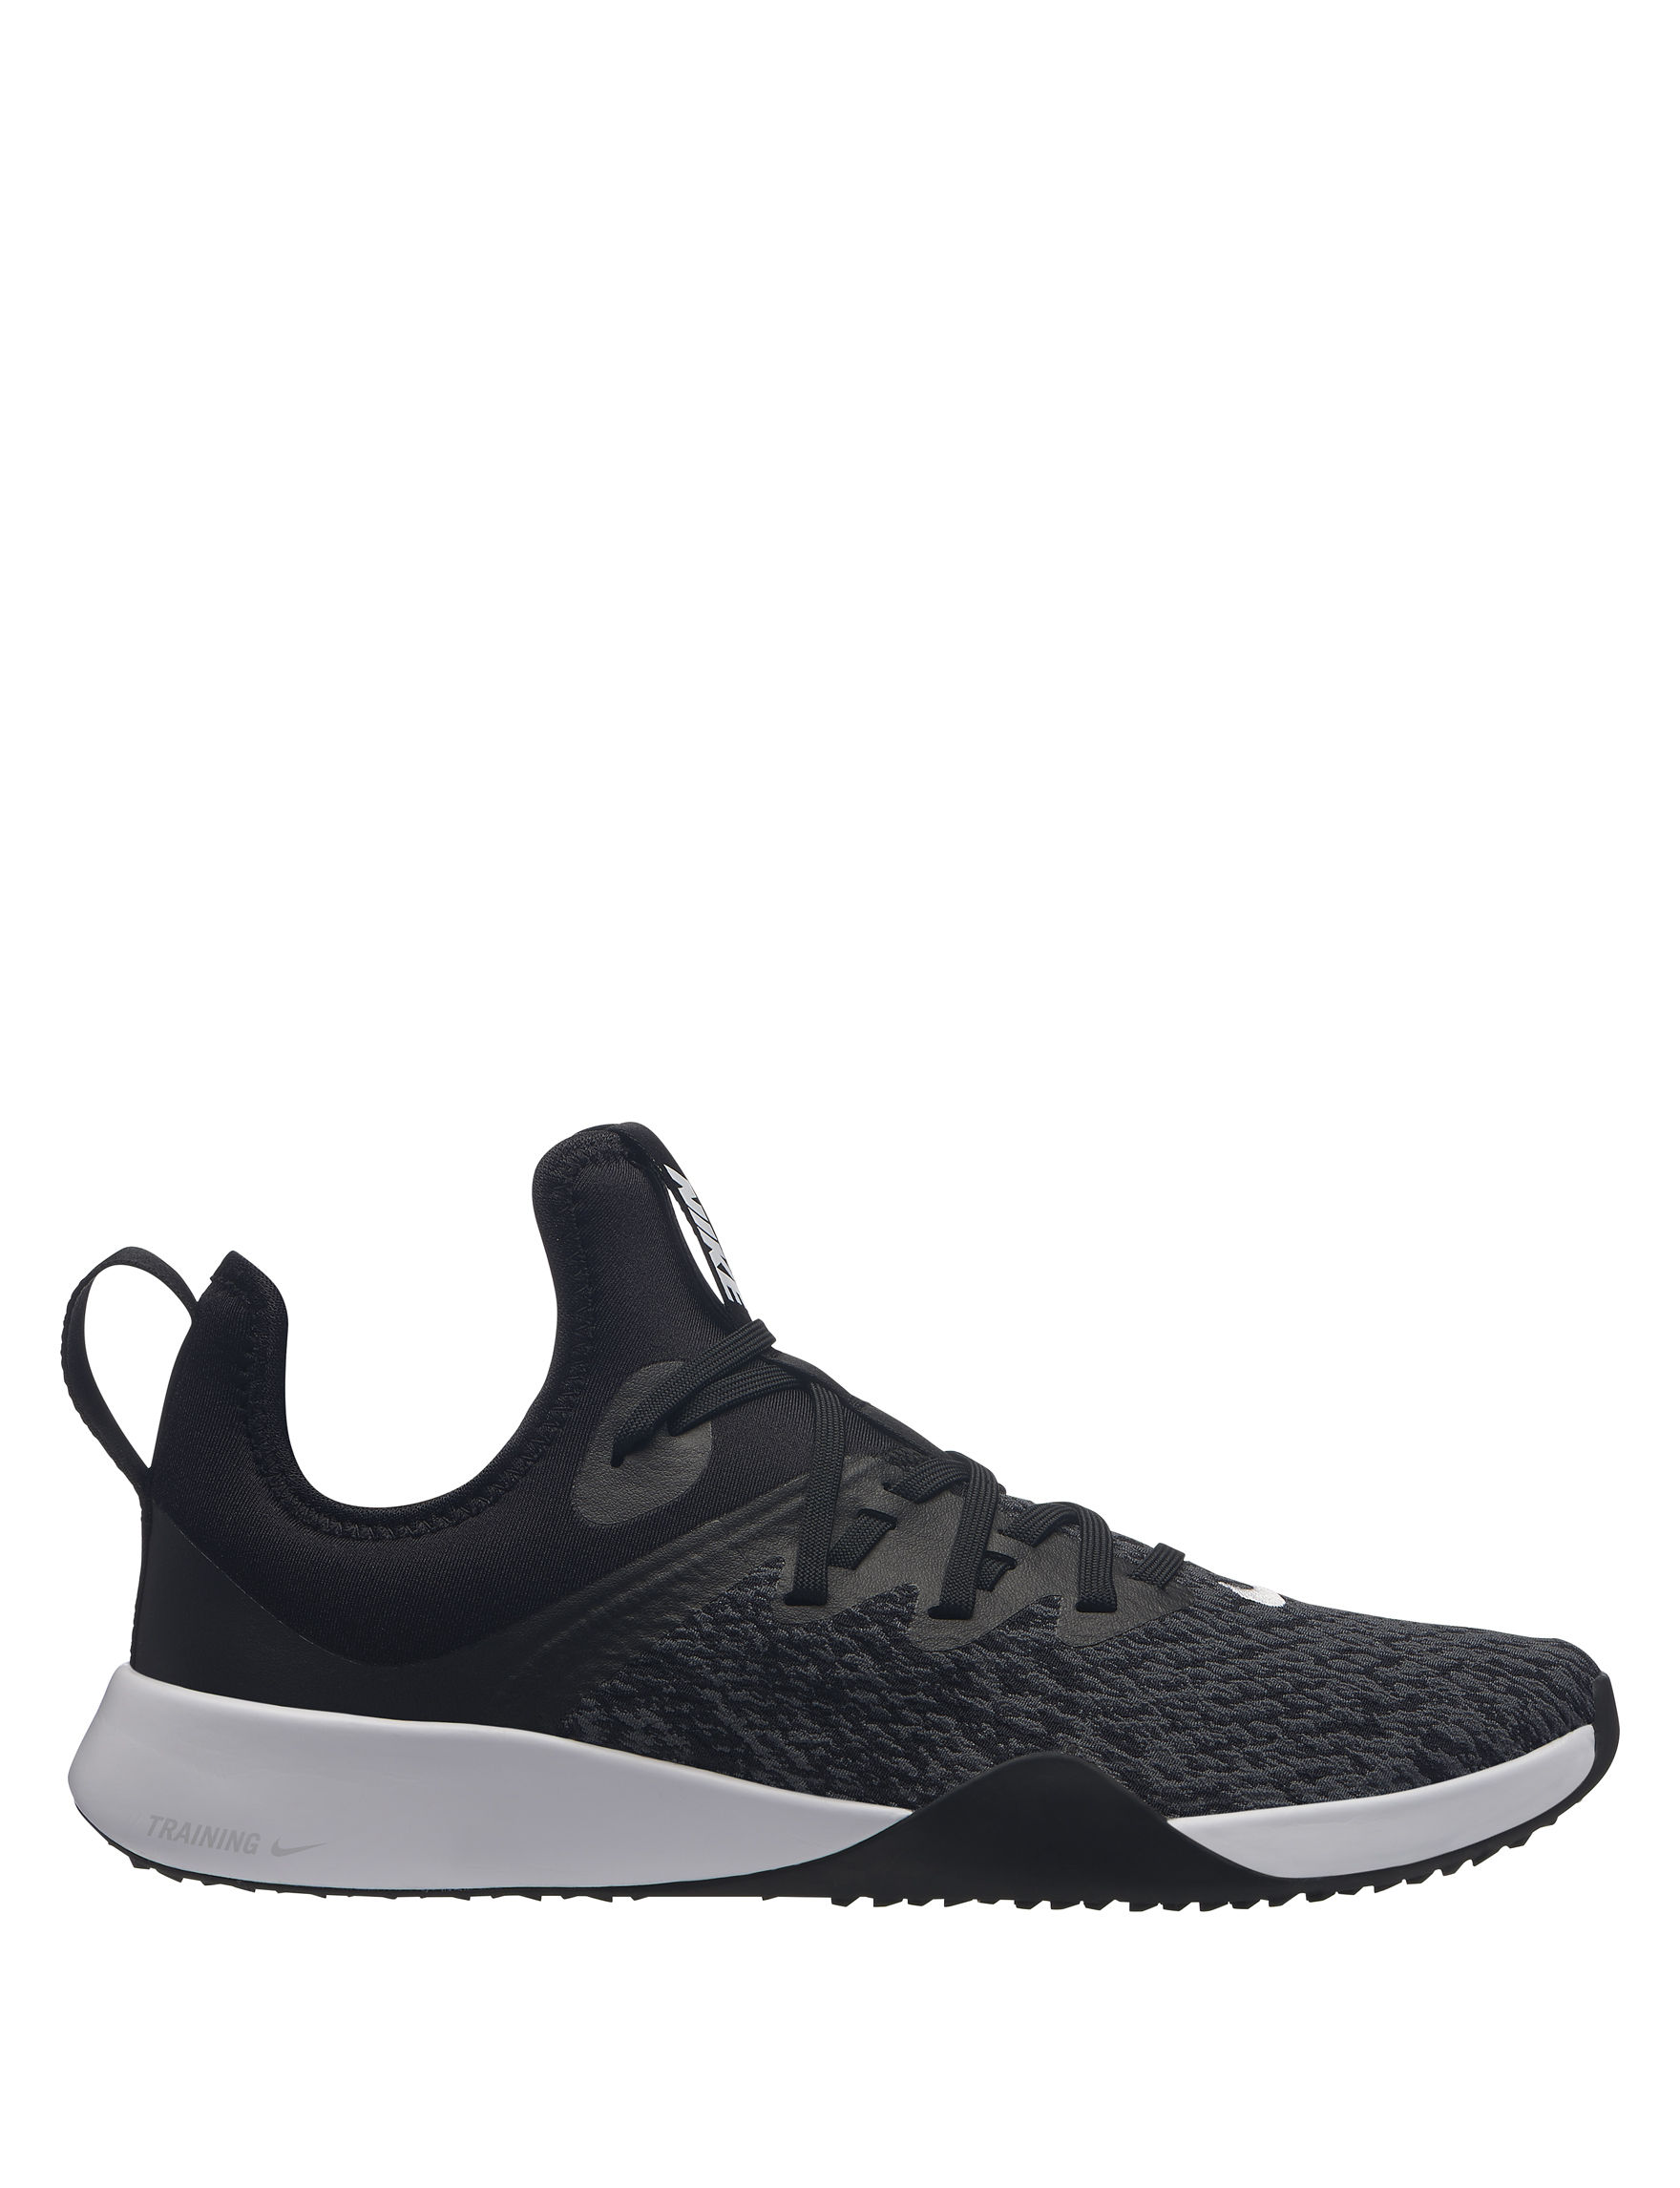 83dc196fe Nike Women's Foundation Elite TR Training Shoes | Stage Stores